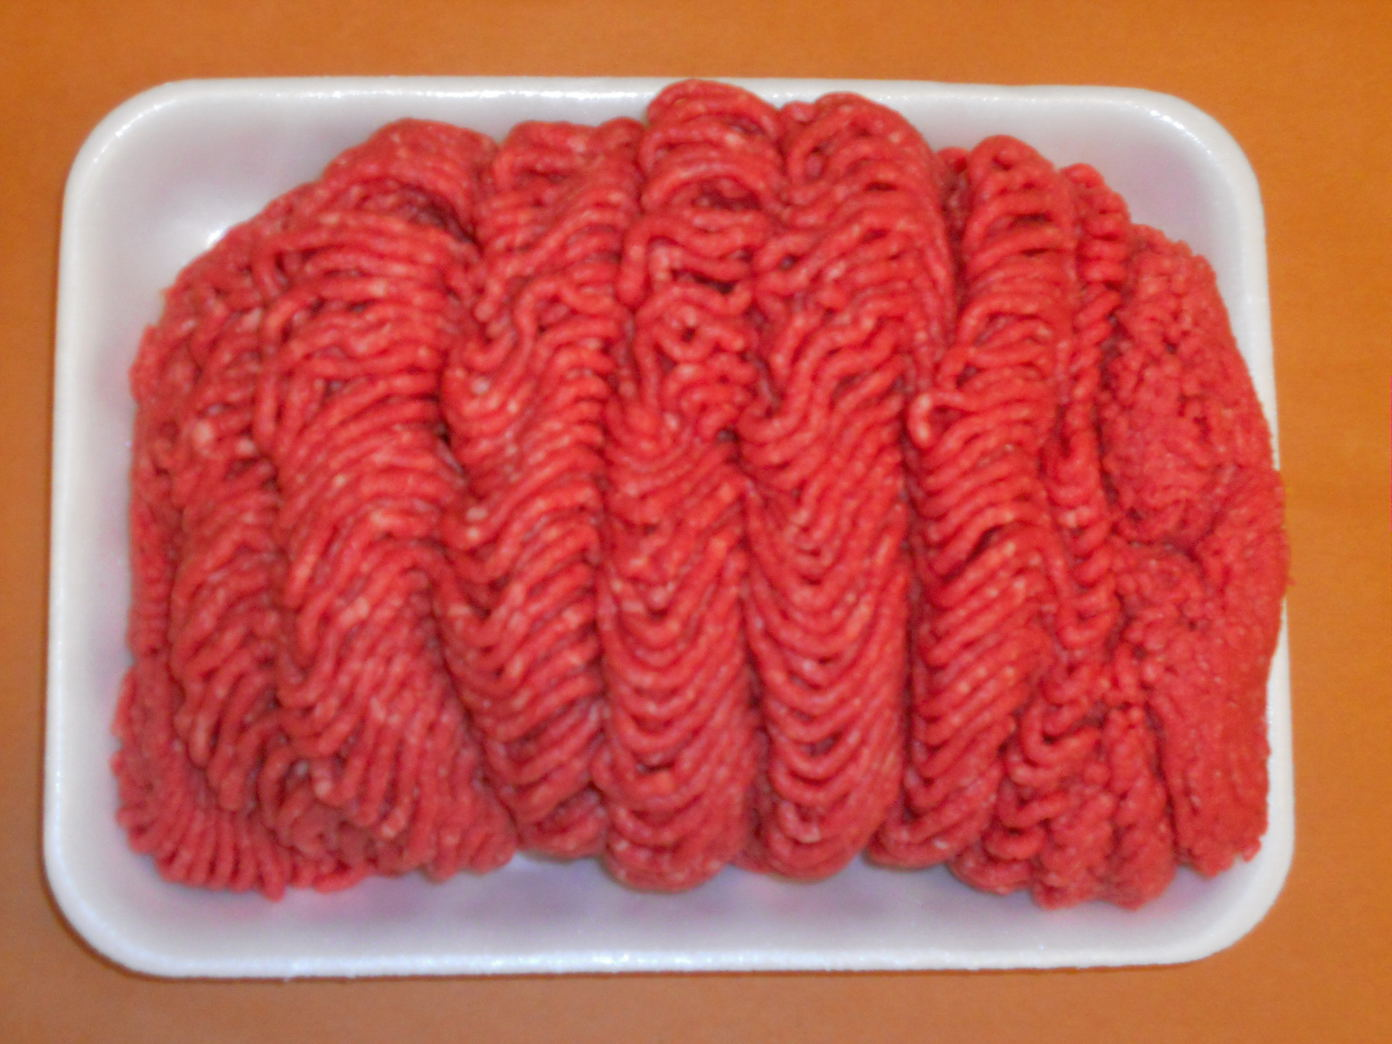 how to make juicy hamburgers with lean ground beef